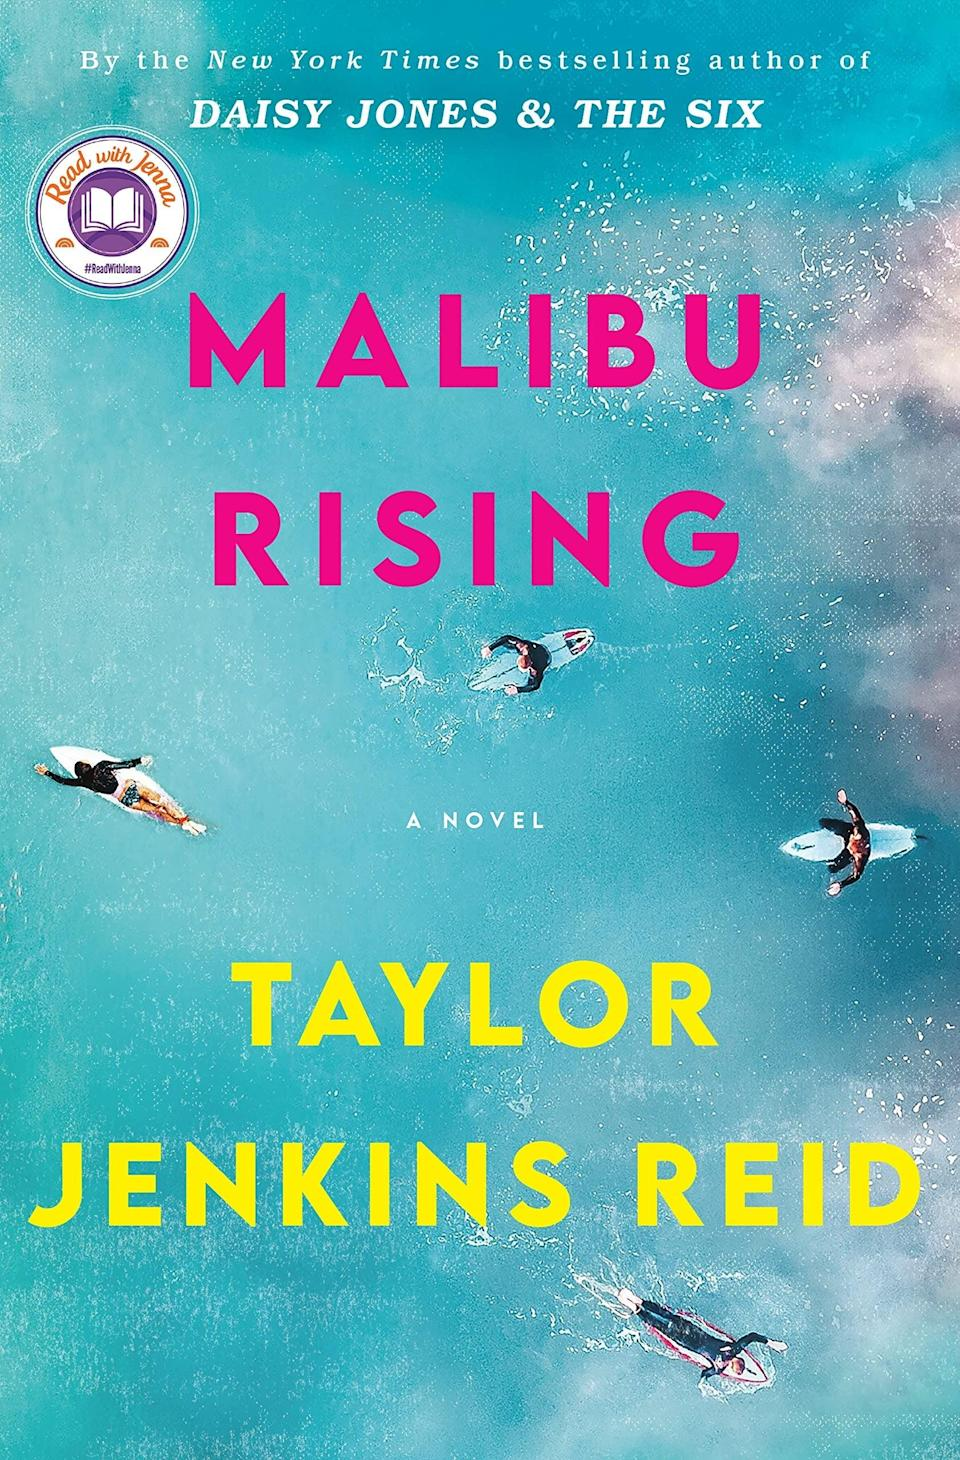 """If anyone is reading the beach book of the summer, it's Coconut Girl. Straight from the author of <em>Daisy Jones & The Six</em>, <em>Malibu Rising</em> tells the tale of one woman's notorious end of the season party. Set in 1983, the story follows surfer and supermodel Nina Riva and her siblings, as they navigate life as children of a famous singer. Having just left her tennis pro husband, Nina is dreading the annual end of summer soiree, but so are other family members who have secrets of their own. As the tension builds, the party begins to lose control, resulting in a disastrous fire. But with the Malibu elite to impress, the Rivas have to try and keep things under control. <br><br><strong>Taylor Jenkins Reid</strong> Malibu Rising, $, available at <a href=""""https://uk.bookshop.org/books/malibu-rising-the-new-novel-from-the-bestselling-author-of-daisy-jones-the-six/9781786331526"""" rel=""""nofollow noopener"""" target=""""_blank"""" data-ylk=""""slk:bookshop.org"""" class=""""link rapid-noclick-resp"""">bookshop.org</a>"""